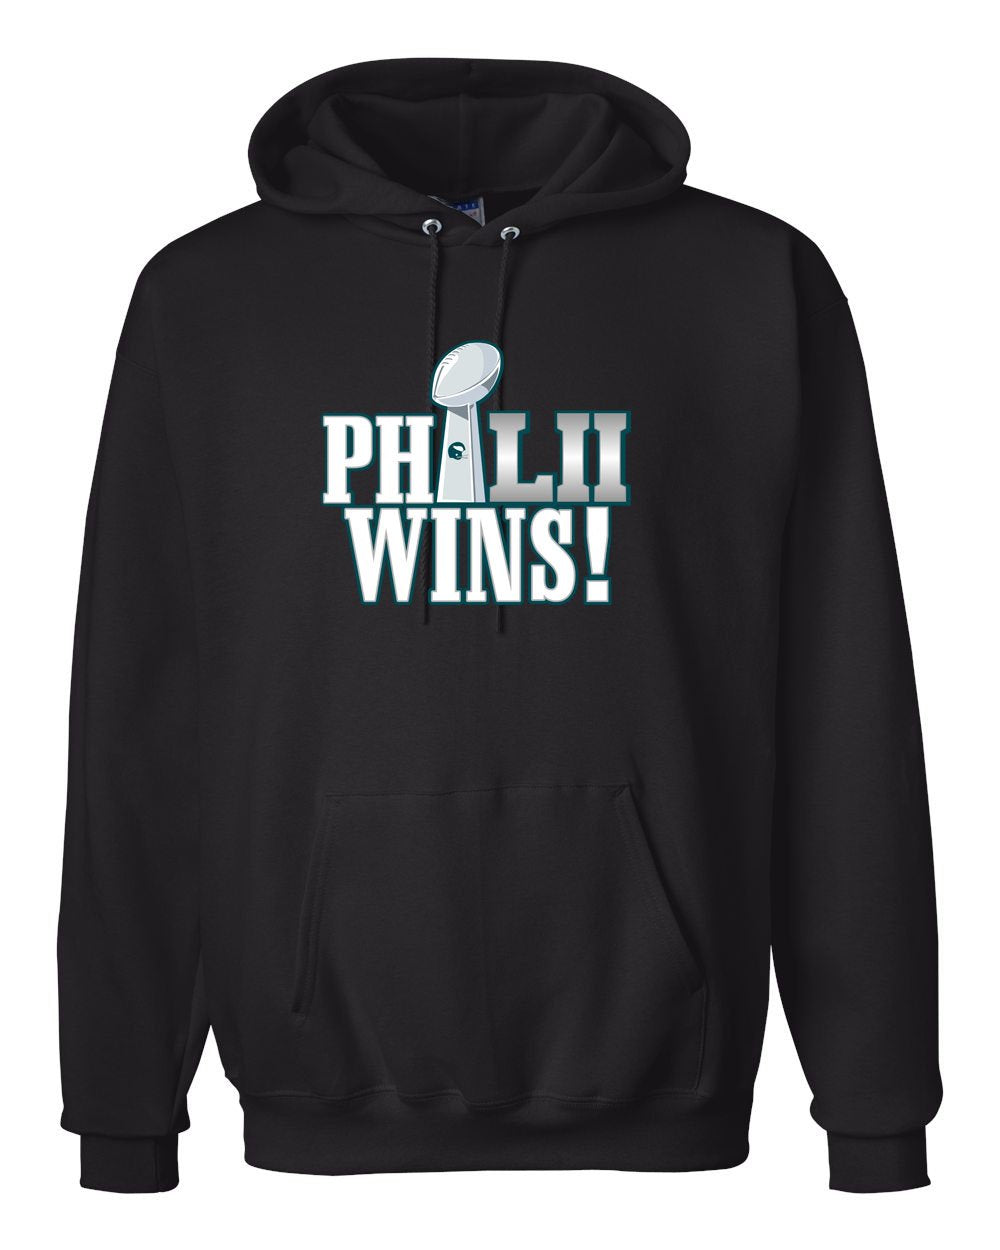 Philly Wins! Hoodie